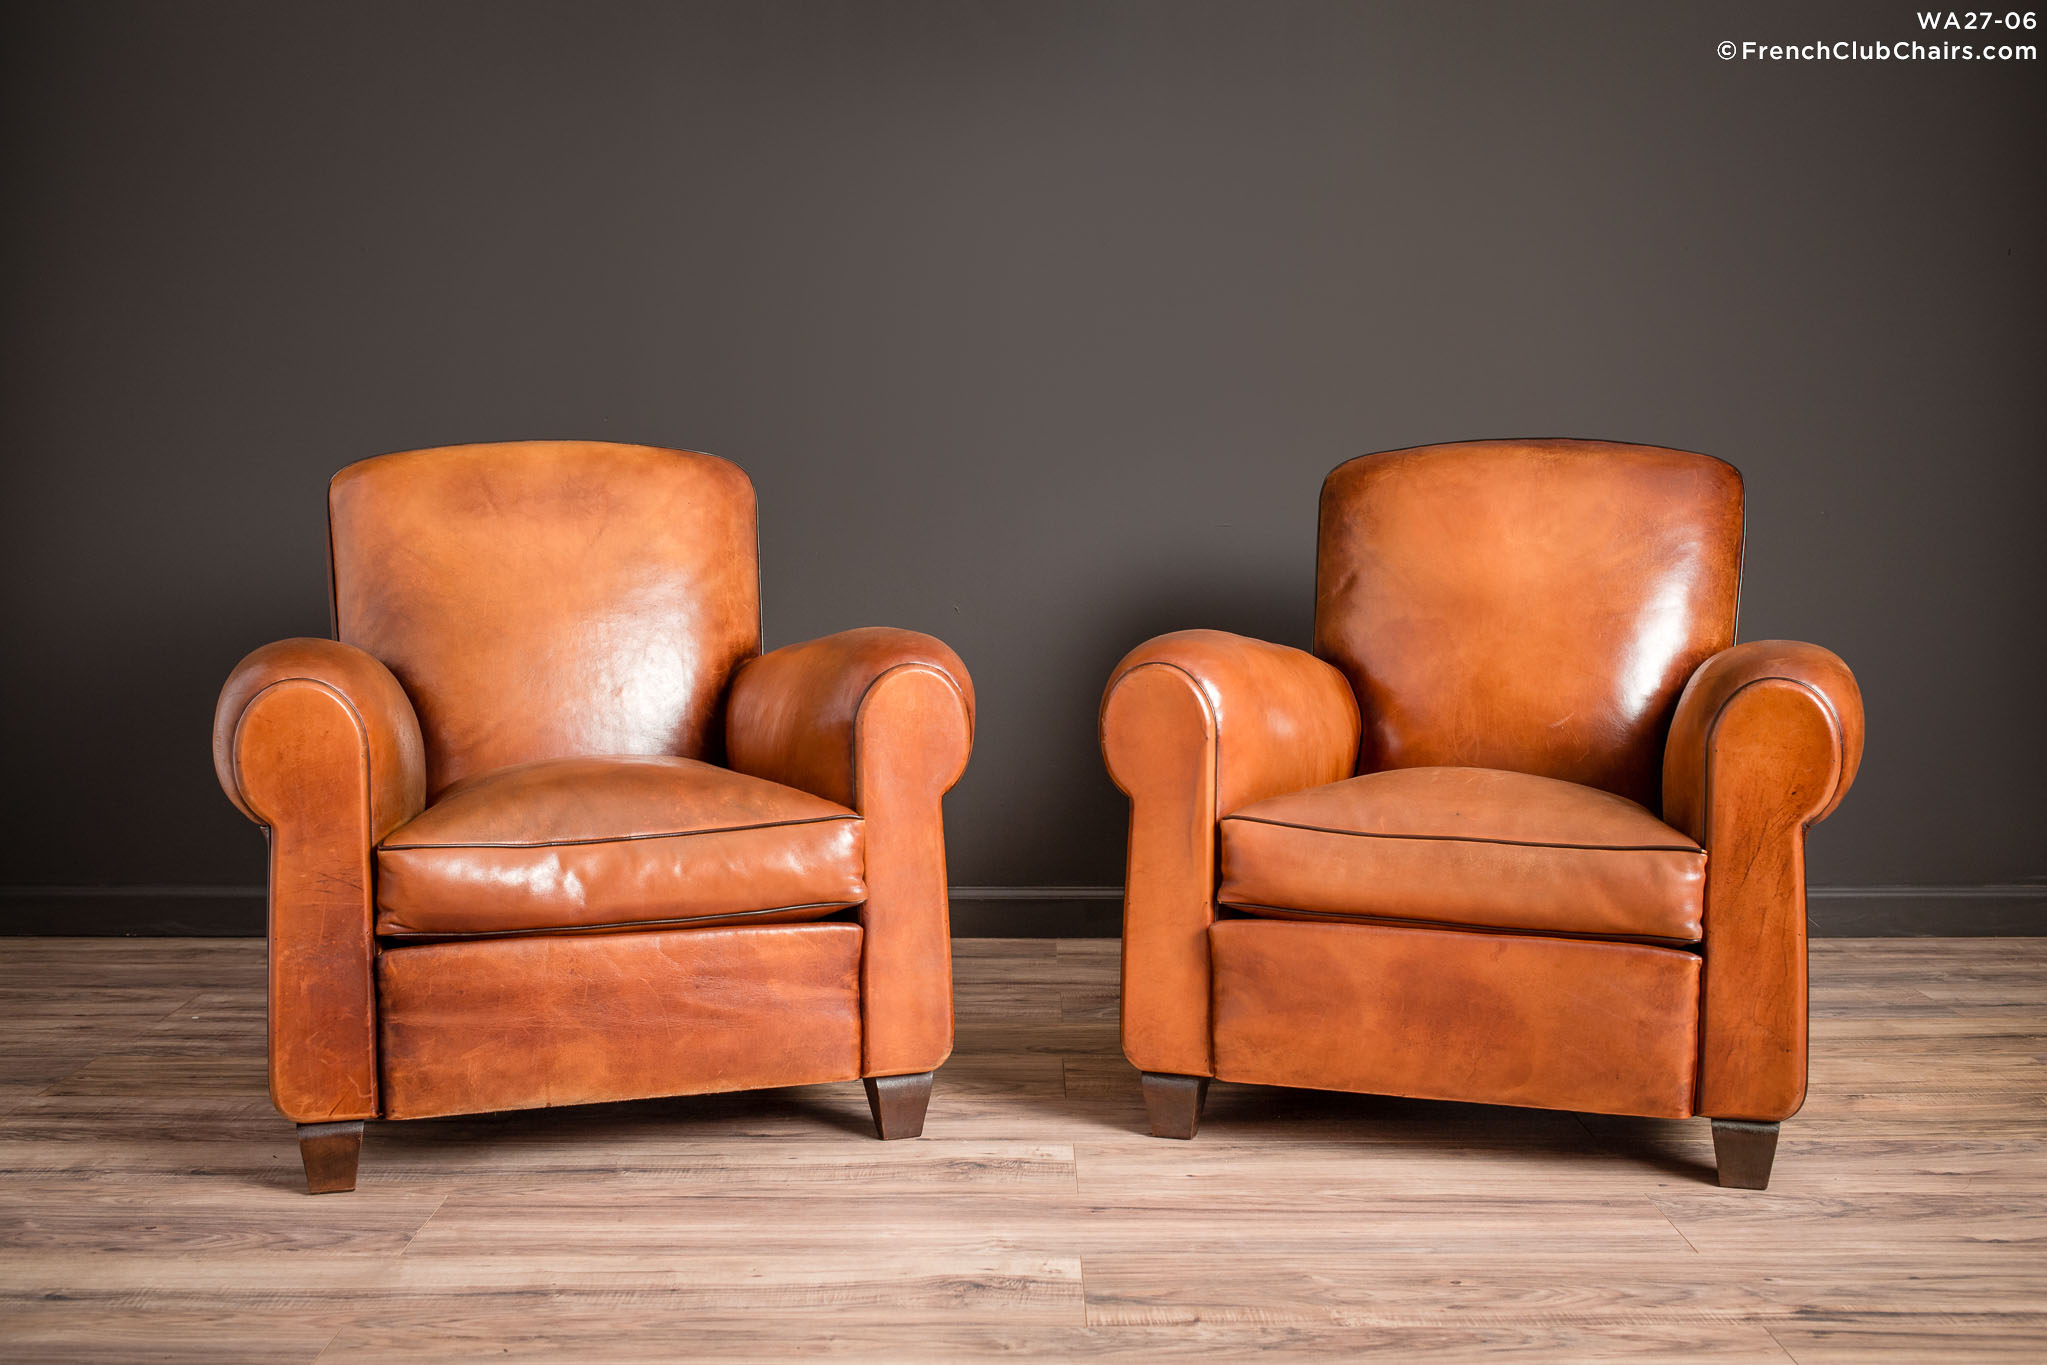 WA_27-06_Library_Giverny_Cognac_Pair_R_1TQ-v01-williams-antiks-leather-french-club-chair-wa_fcccom